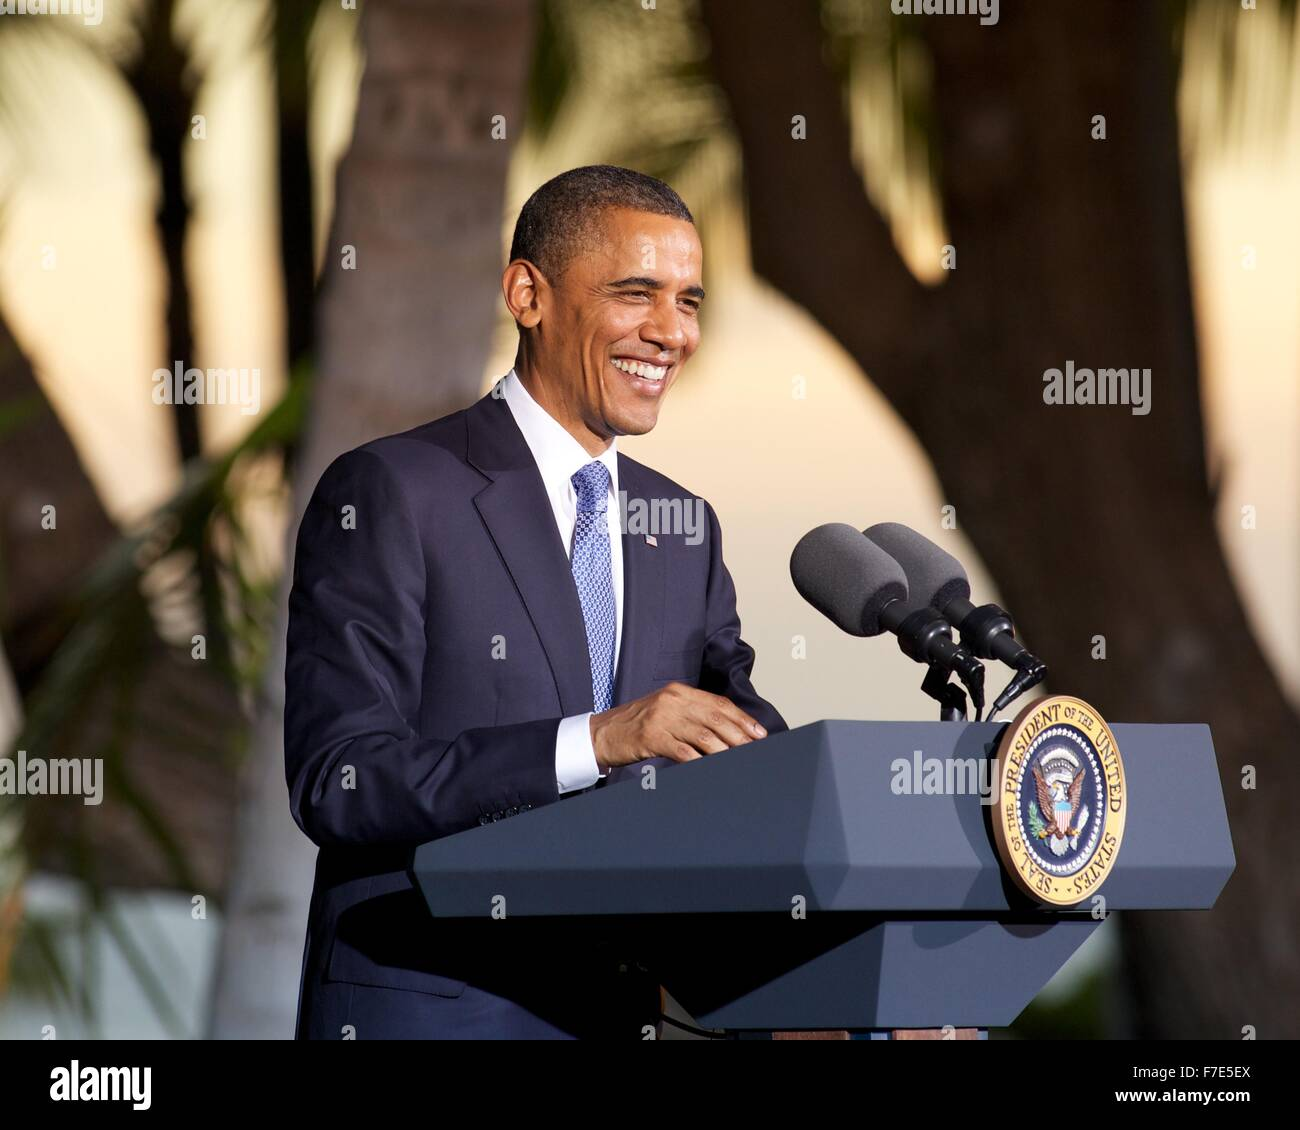 Concluding Press Conference by President Barack Obama at APEC Conference in Honolulu, HI - Stock Image